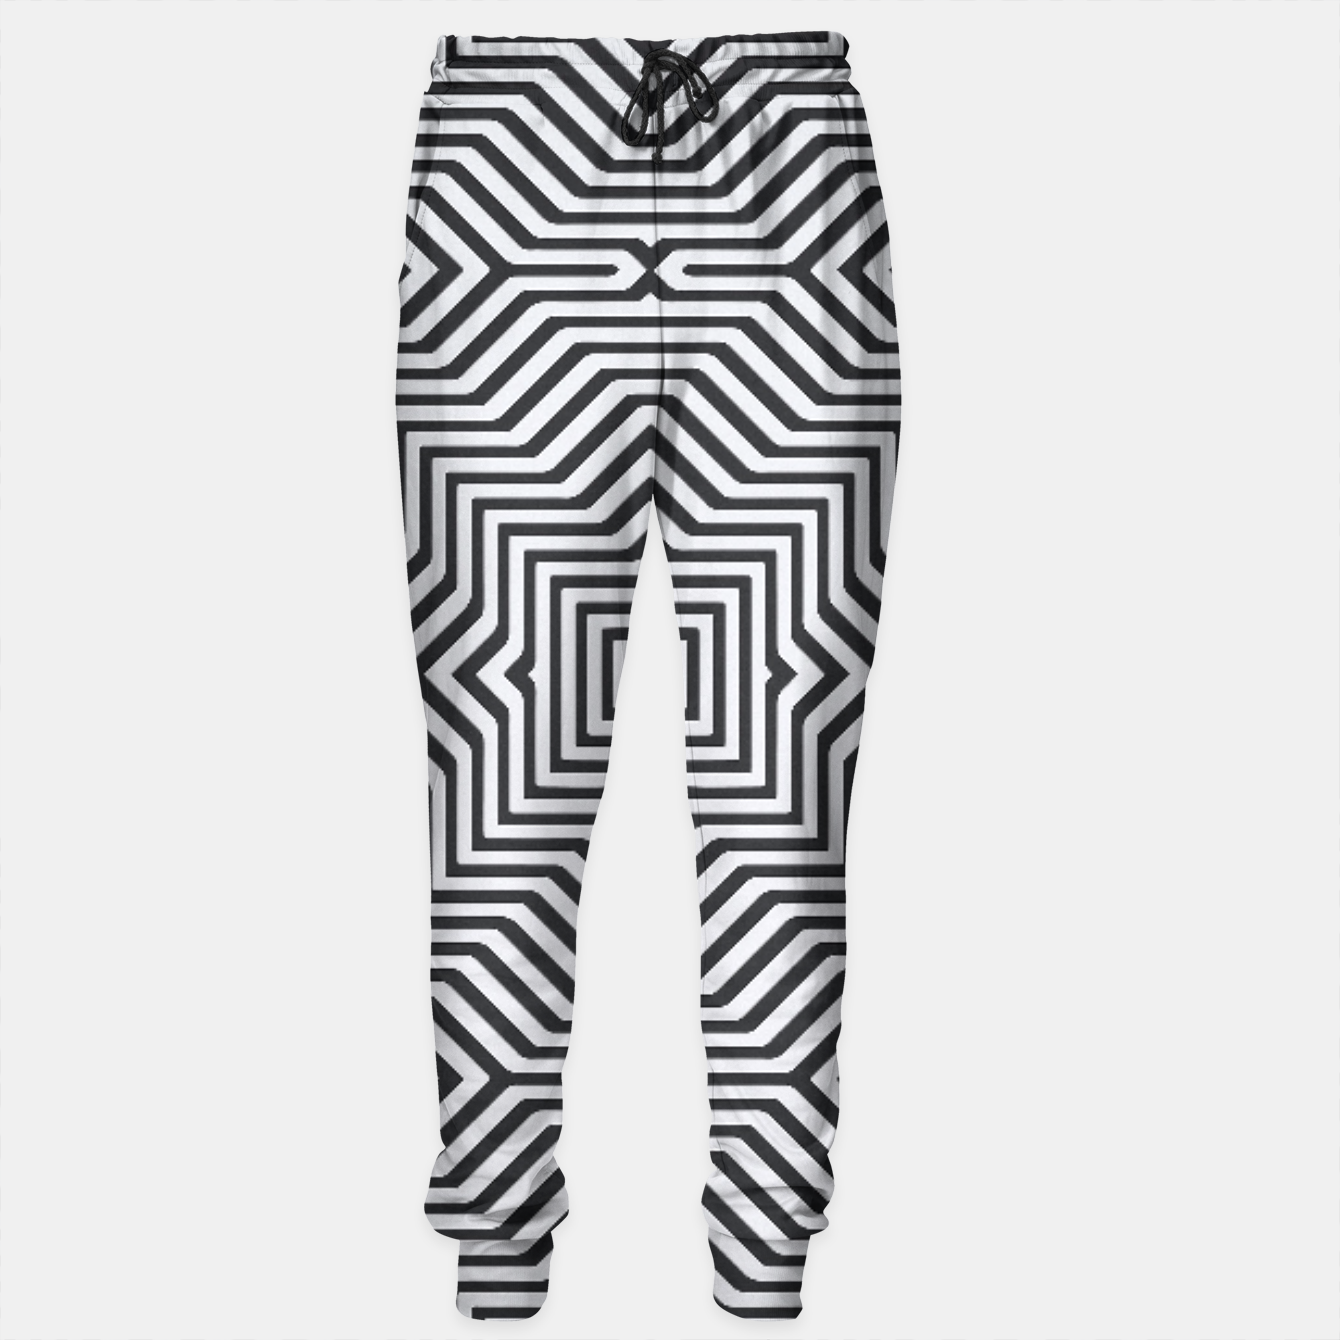 Image de Minimal Geometrical Optical Illusion Style Pattern in Black & White Sweatpants - Live Heroes